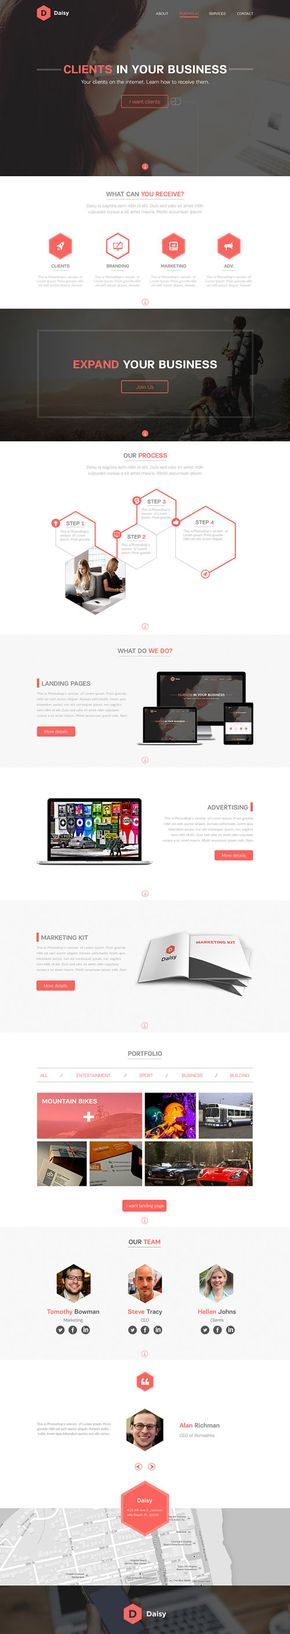 Sharefull.net – One Page PSD Website Theme. PSD | very easy to customize and edit in Adobe Photoshop | 53 Mb    Create your new clean & flat style web design in minutes.  Download free One Page PSD Website Theme: Download from Nitroflare.com Download from...  ♡ ShareFull.Net ☼ Info & Download: http://goo.gl/vW5Jgx »»»